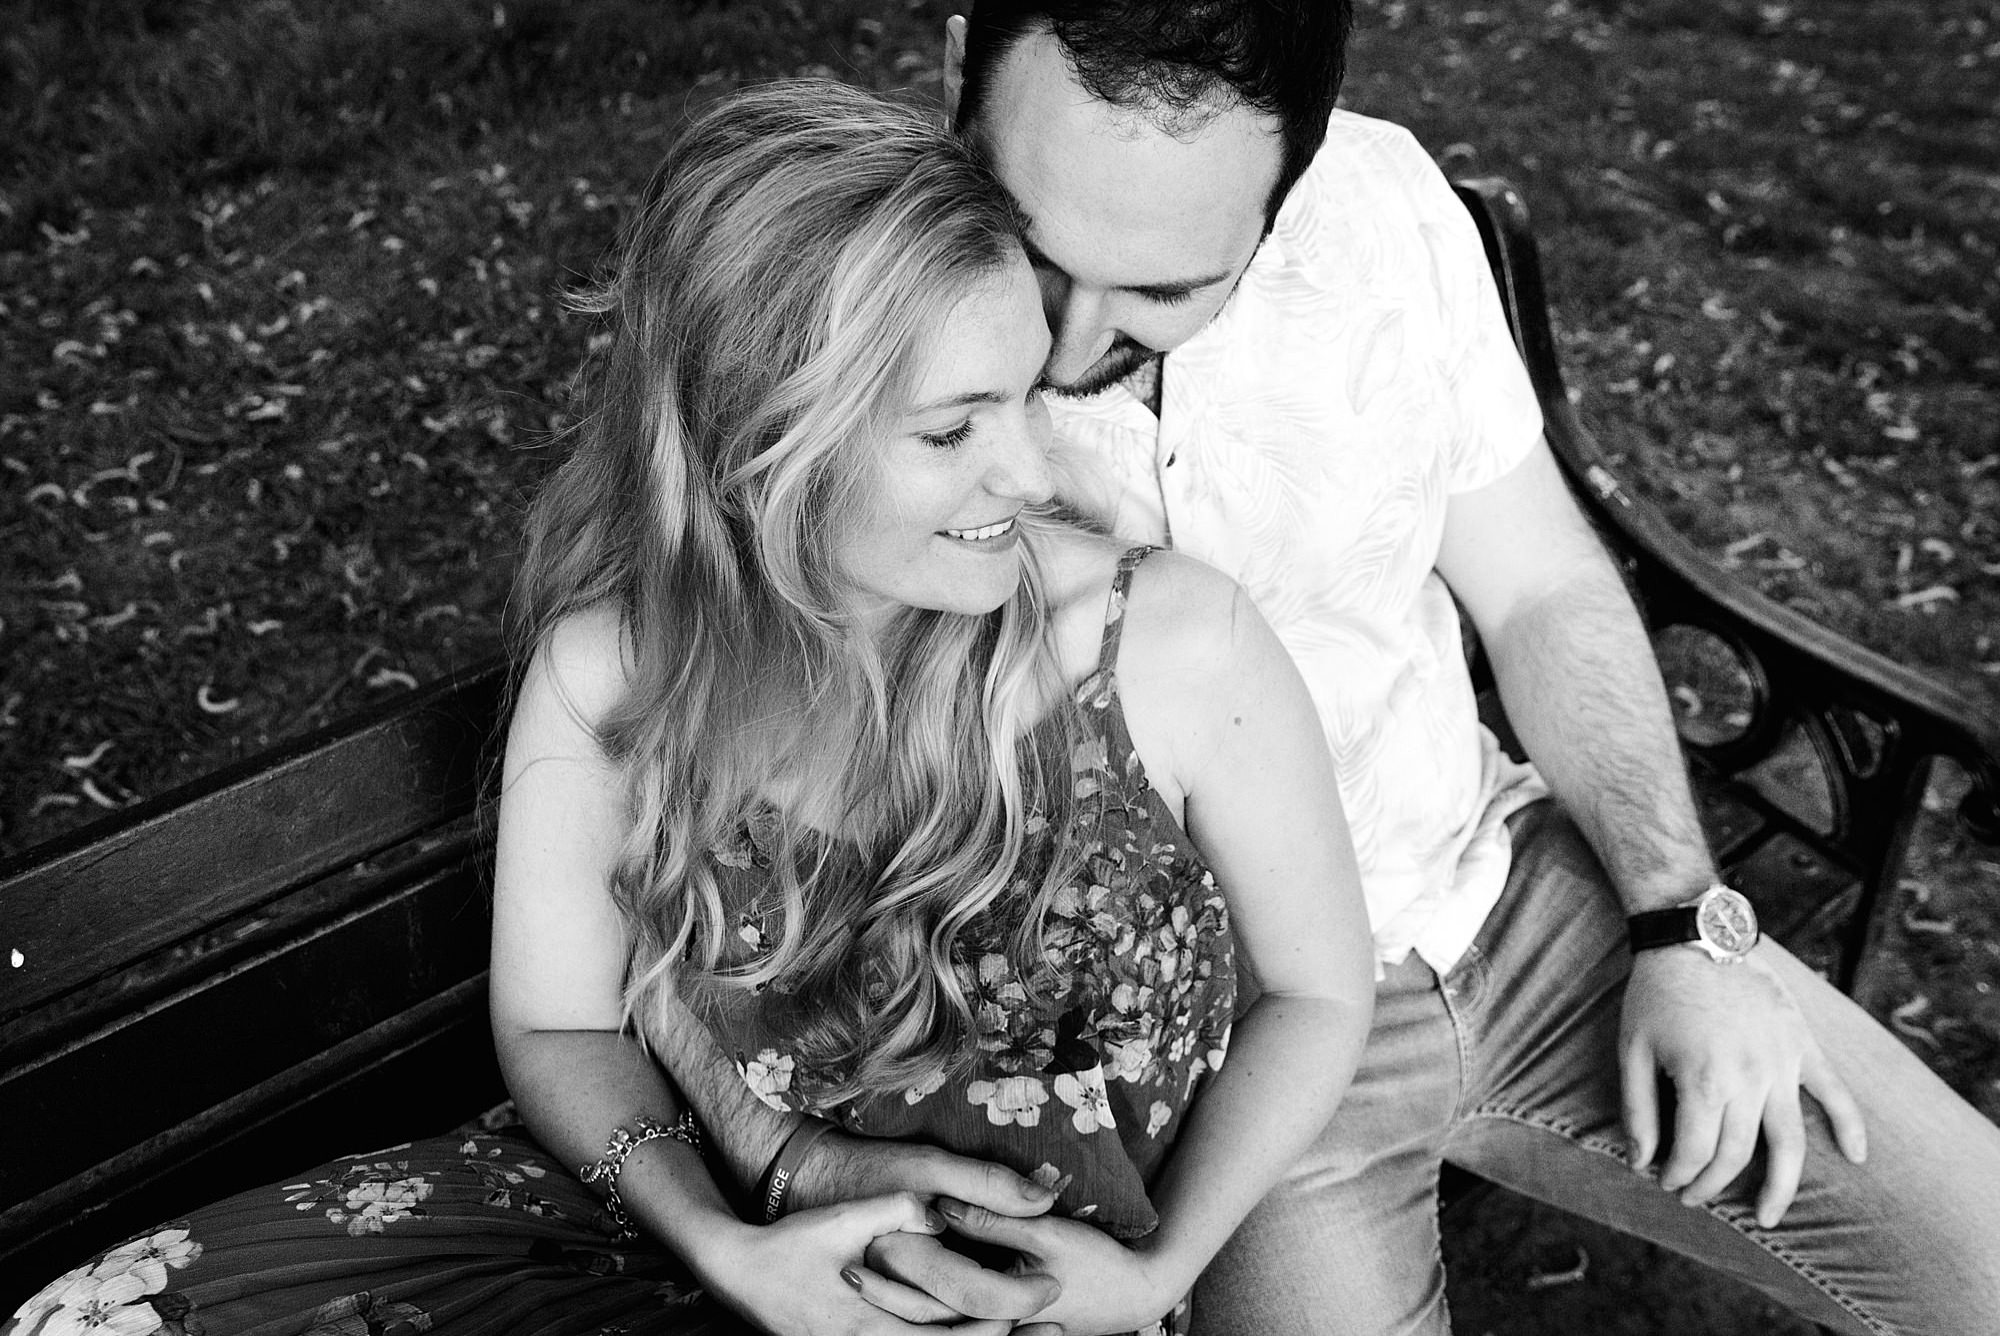 Summer evening engagement shoot couple cuddle together on park bench